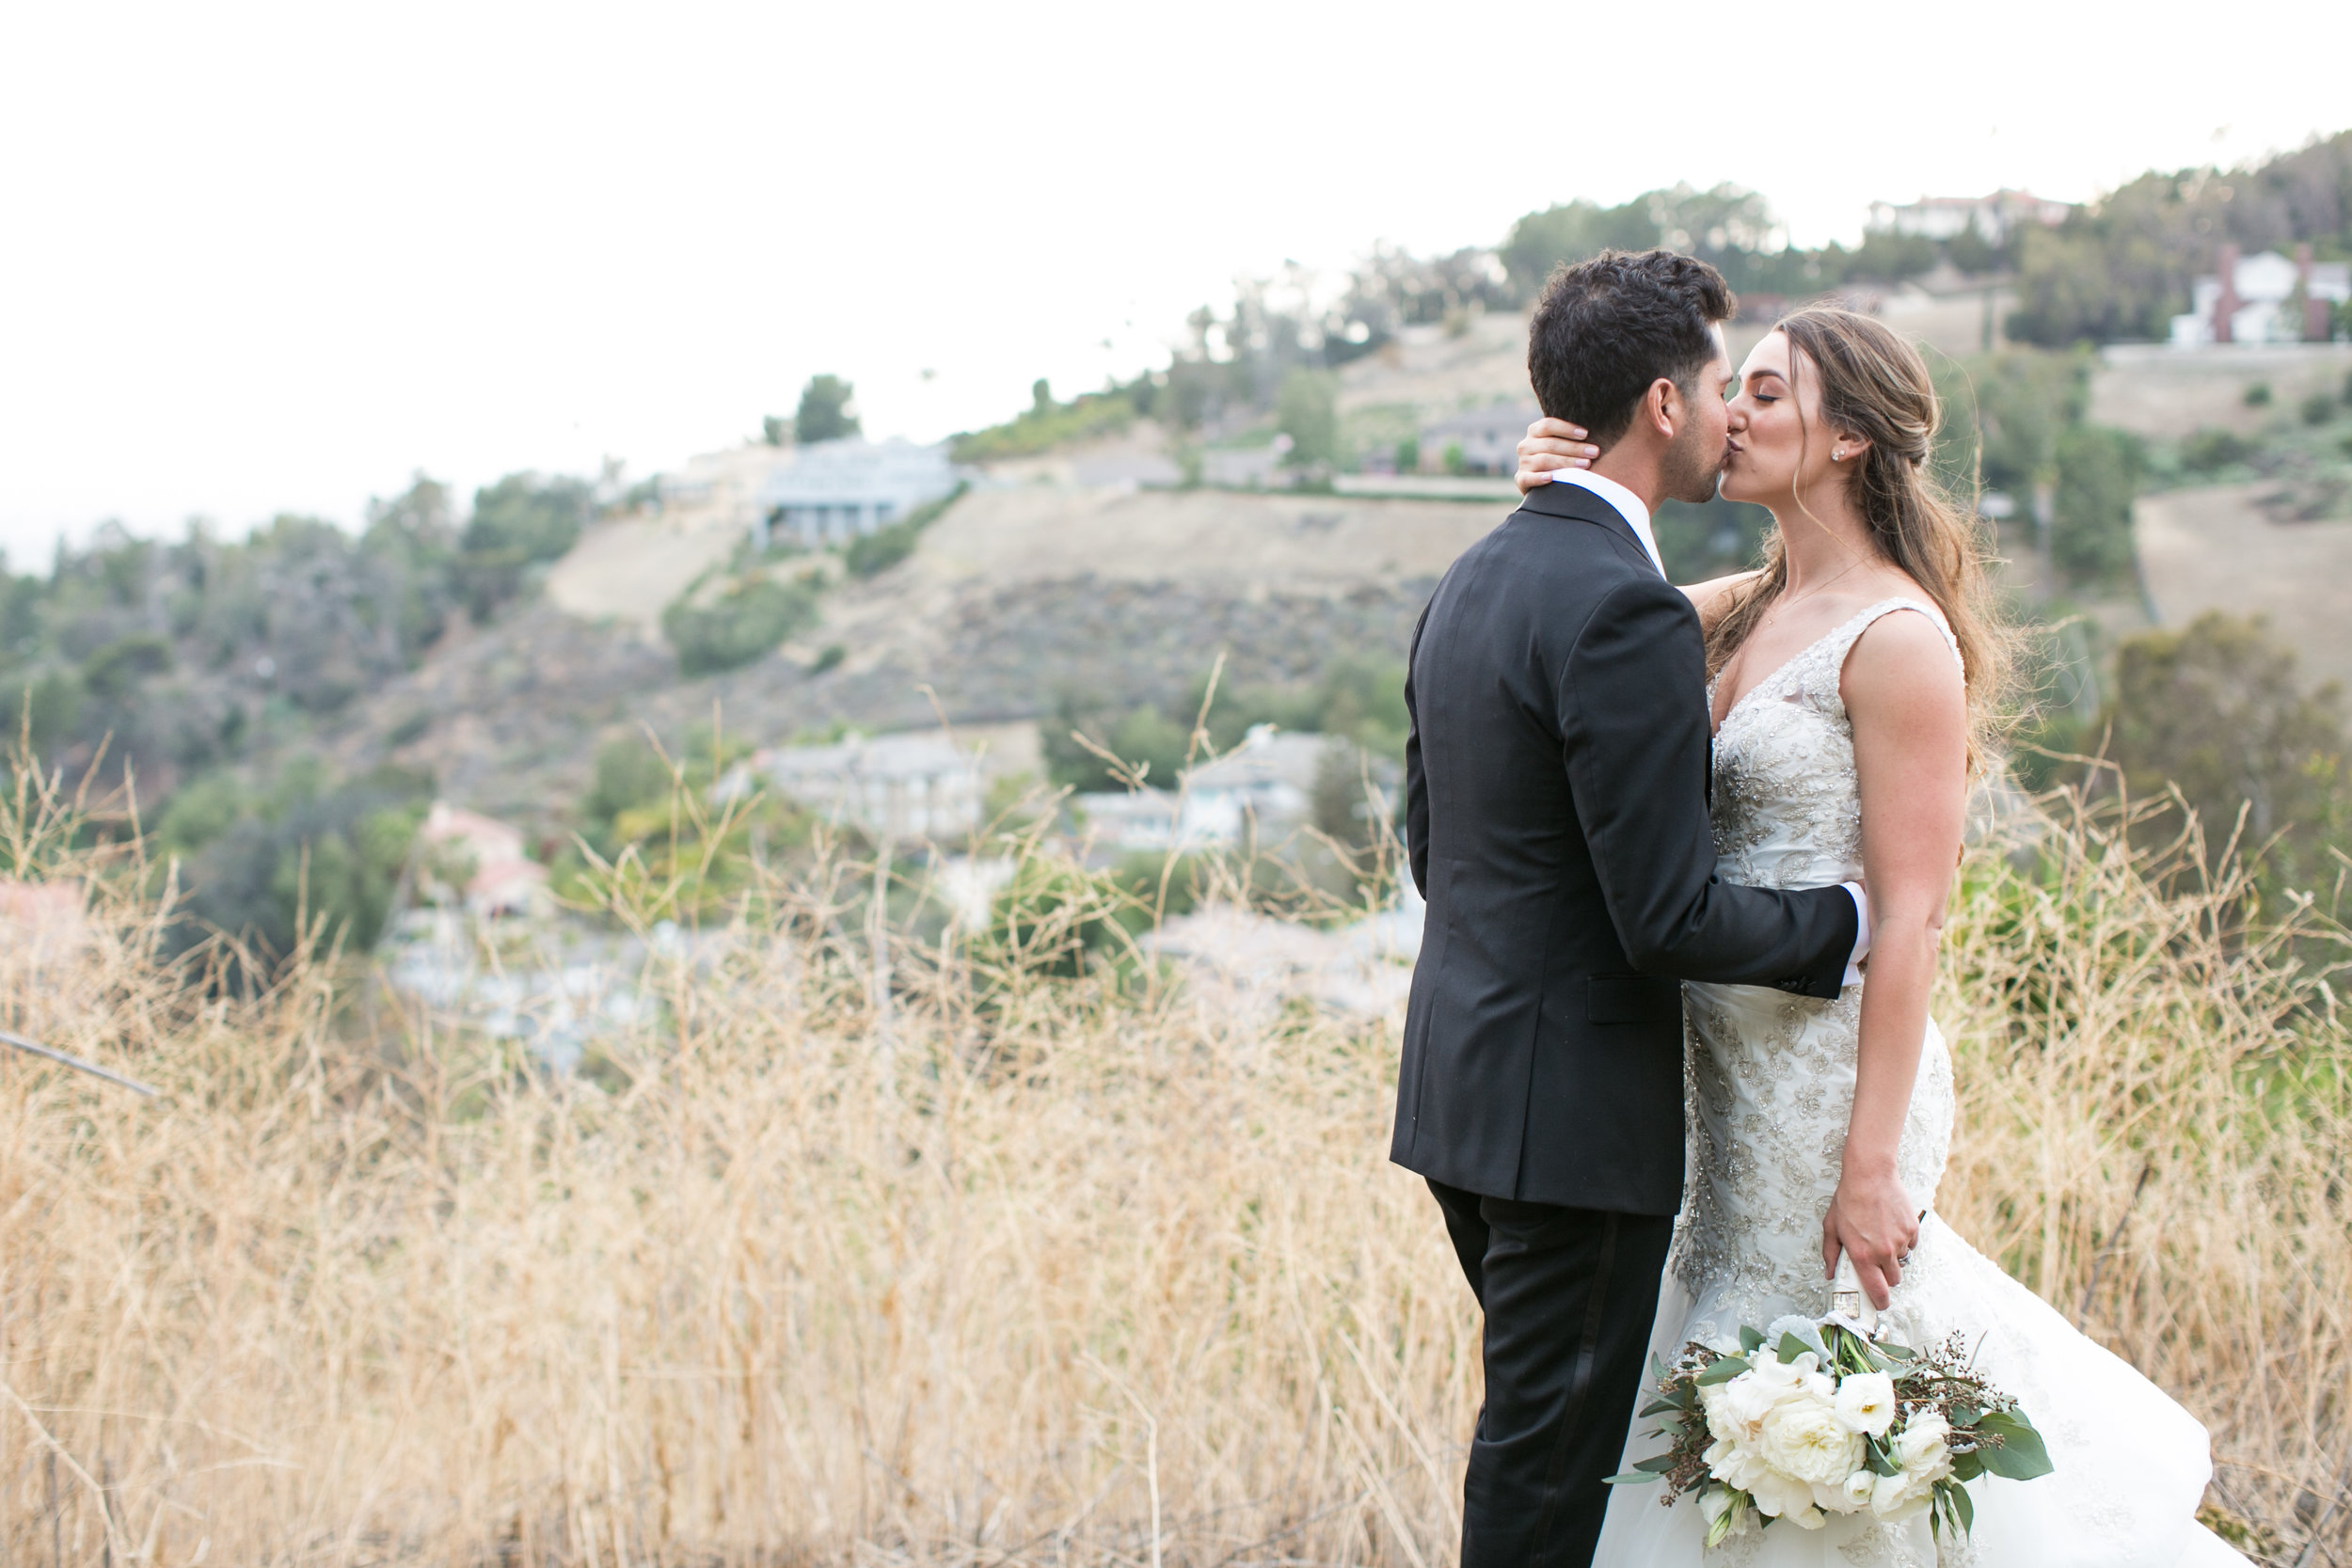 Orange-County-California-Wedding-Bride-Groom-Sweetheart-Golden-Hour.jpg